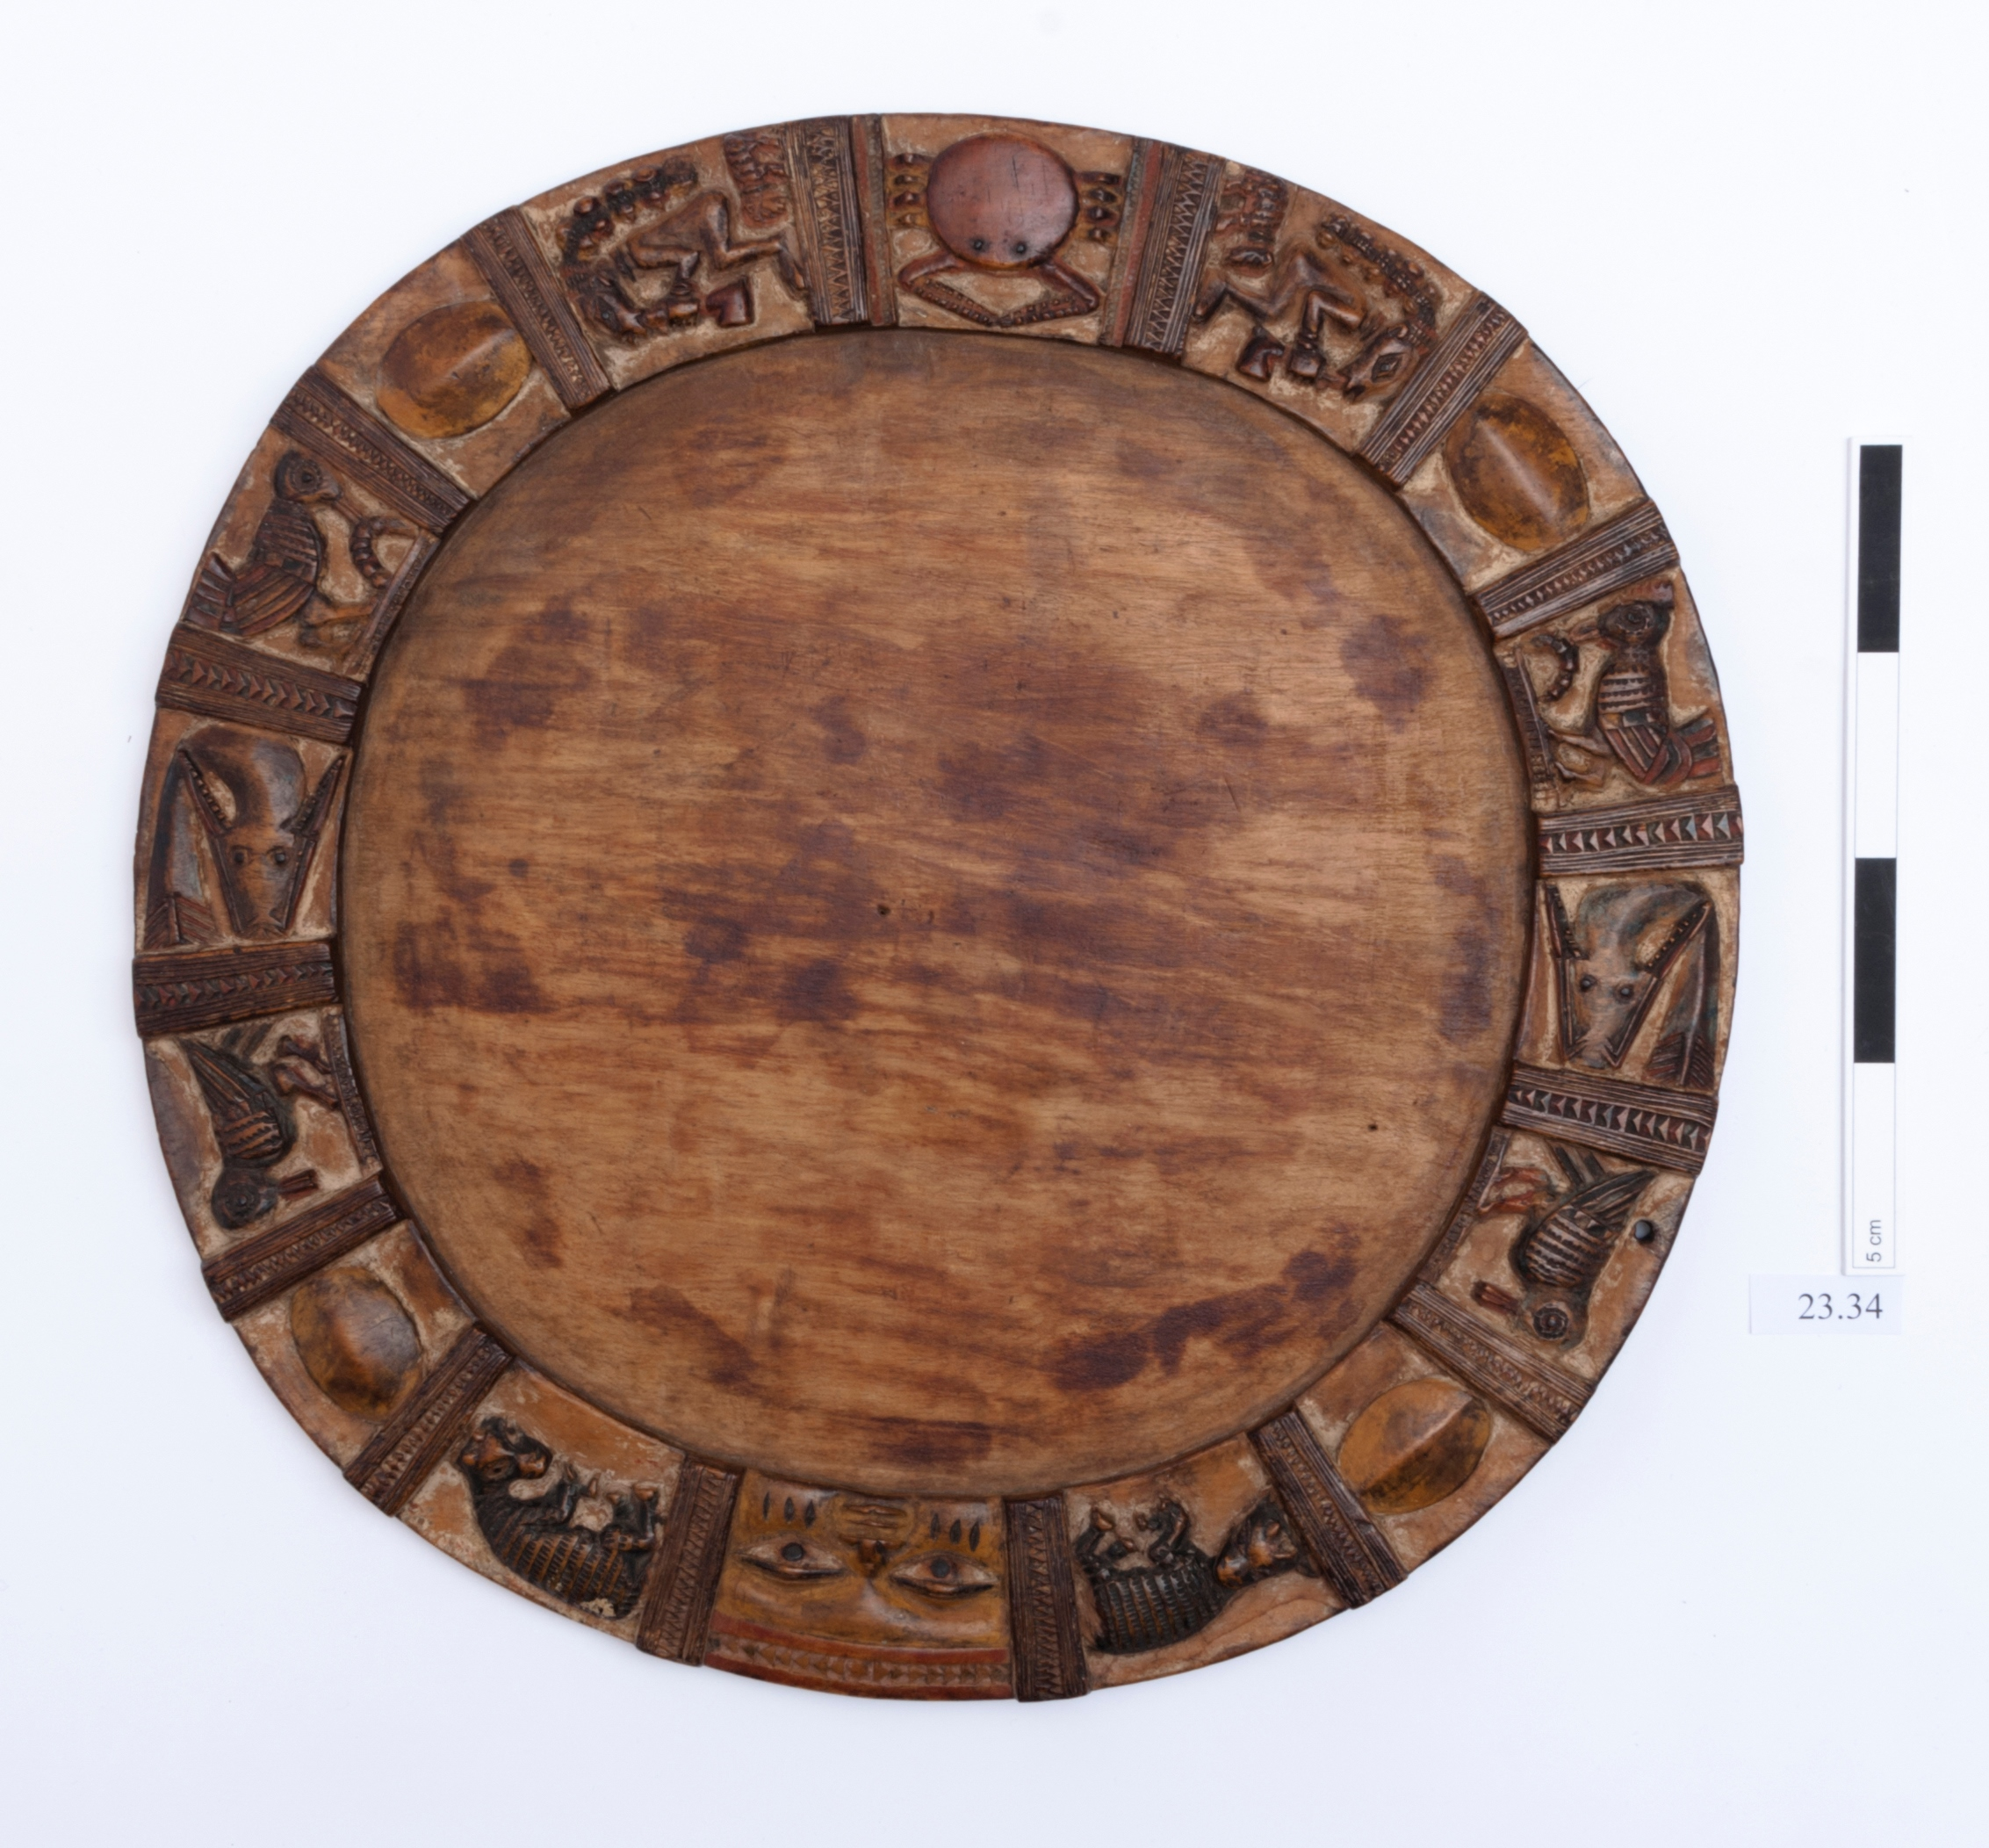 Ifá divination board. Ifá divination is a Yoruba religious practice with its centre in south-western Nigeria.